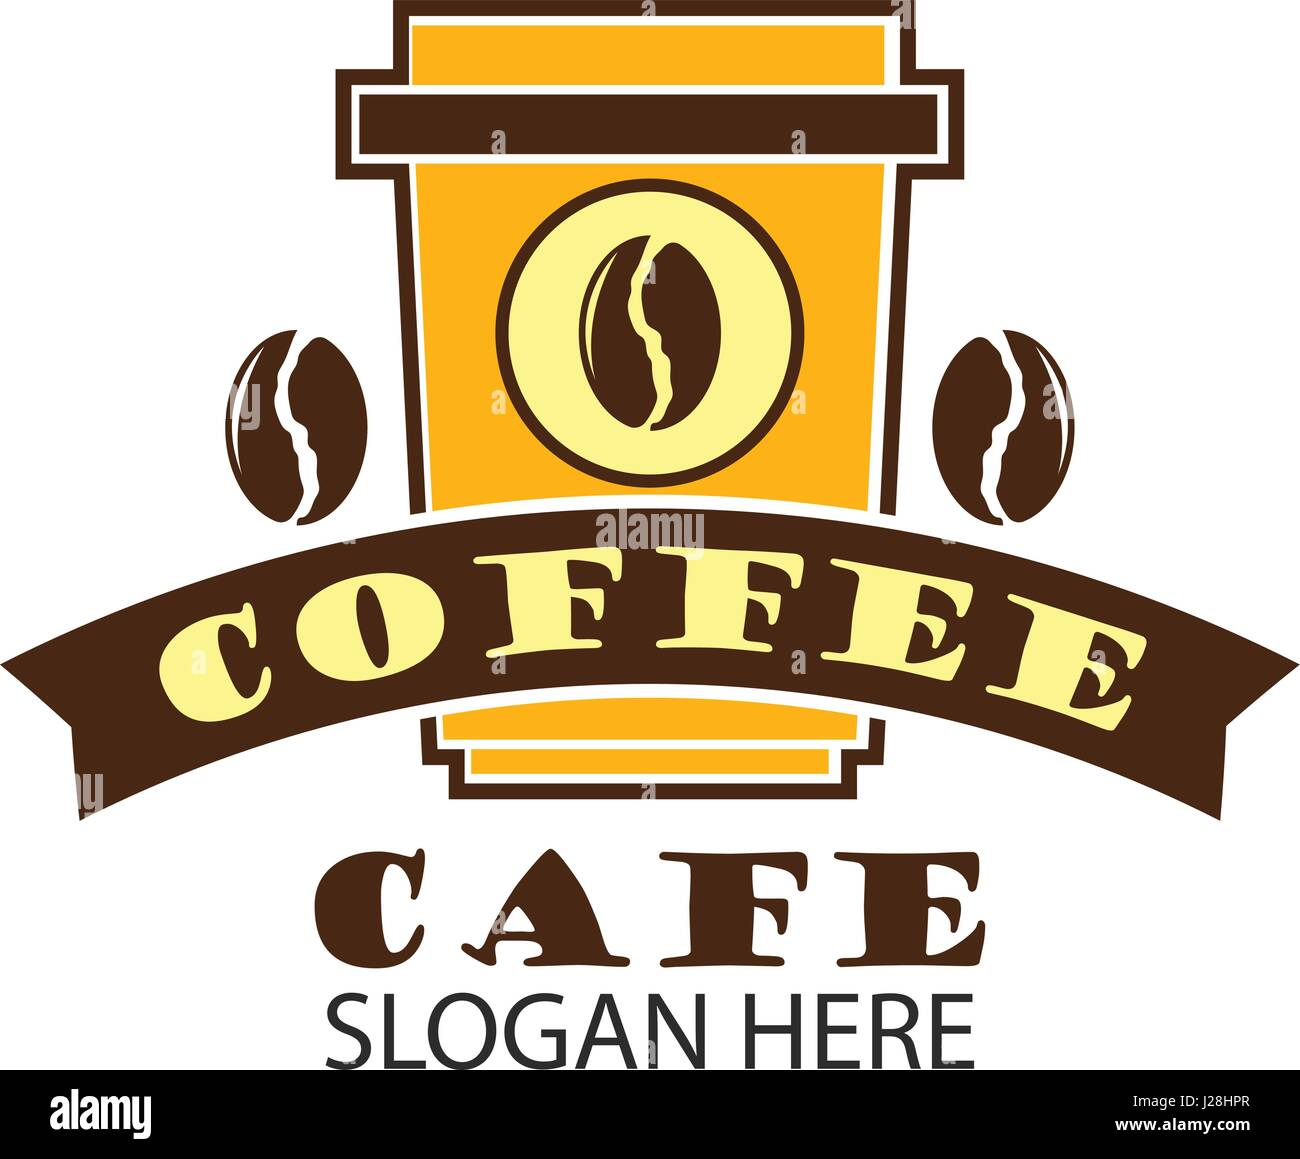 Coffee Slogan Stock Photos & Coffee Slogan Stock Images